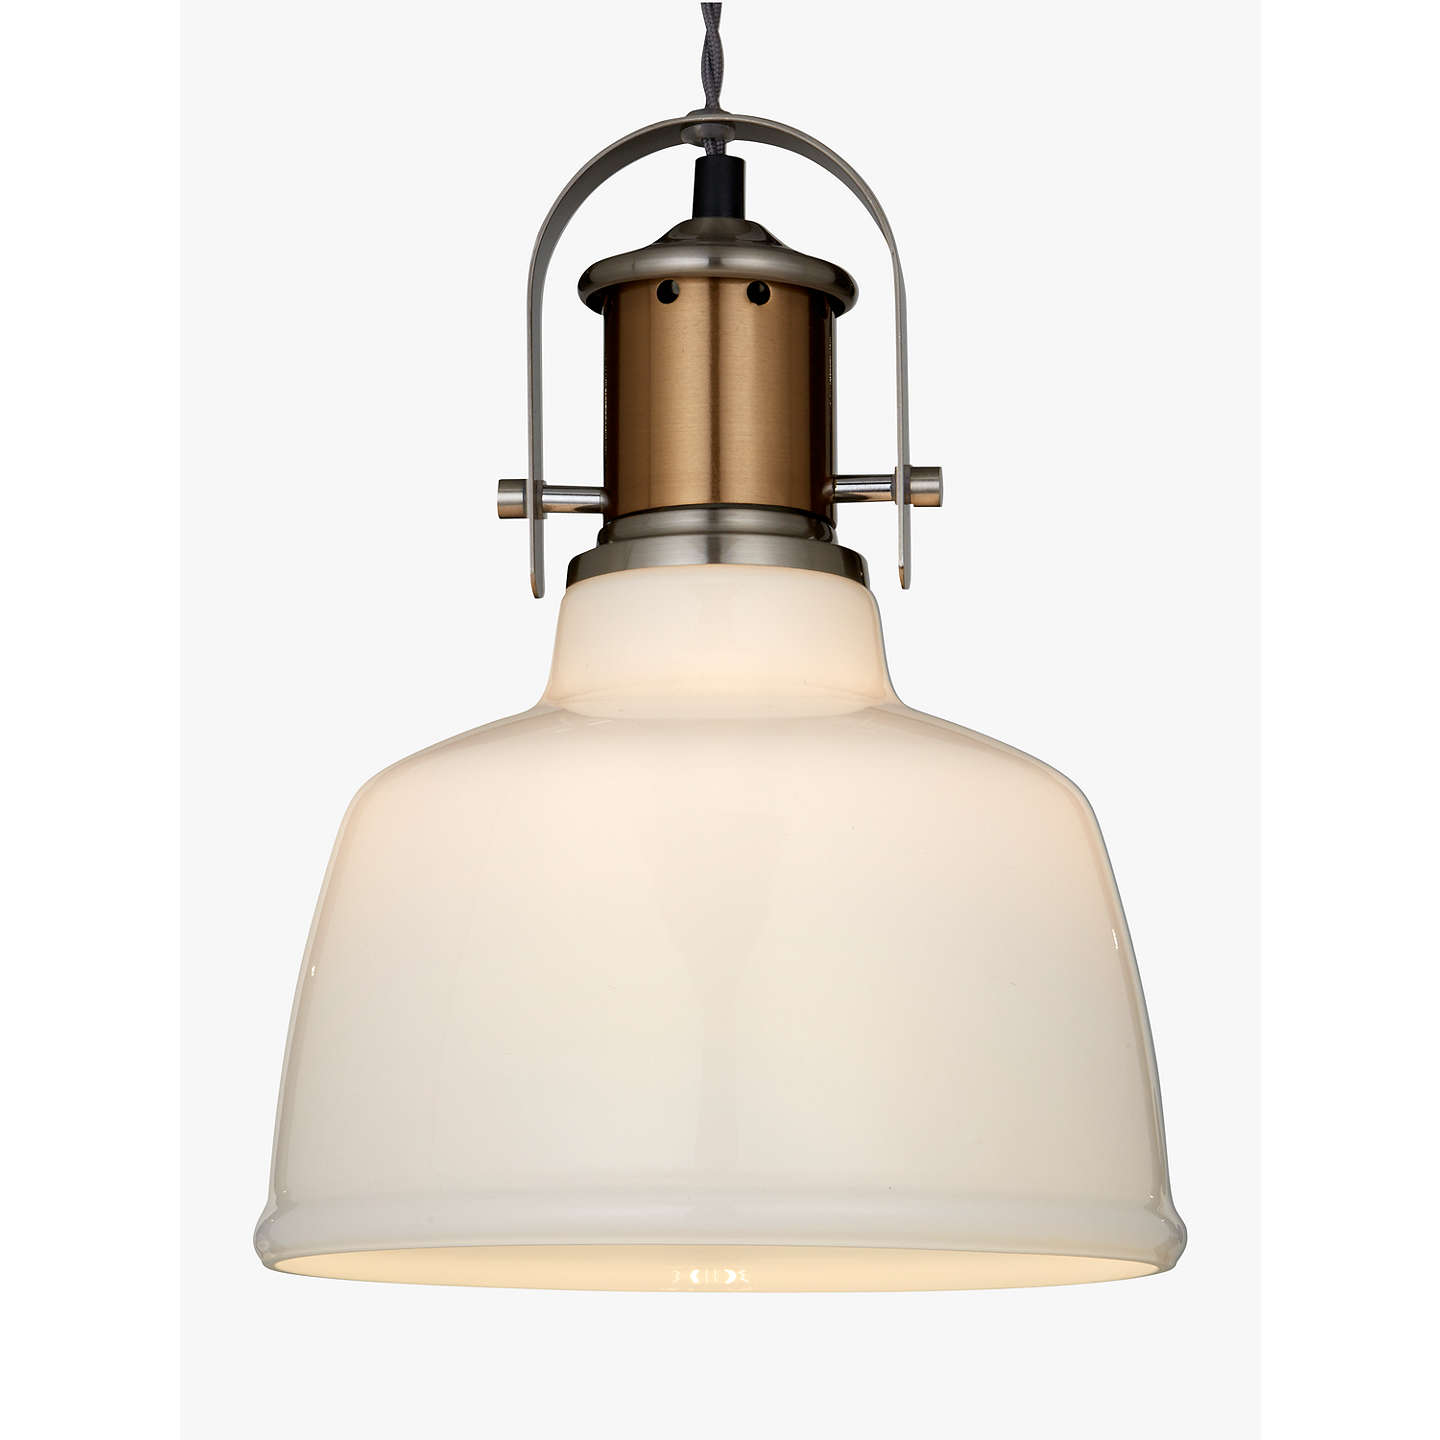 Croft collection lloyd glass white pendant ceiling light satin buycroft collection lloyd glass white pendant ceiling light satin nickel online at johnlewis mozeypictures